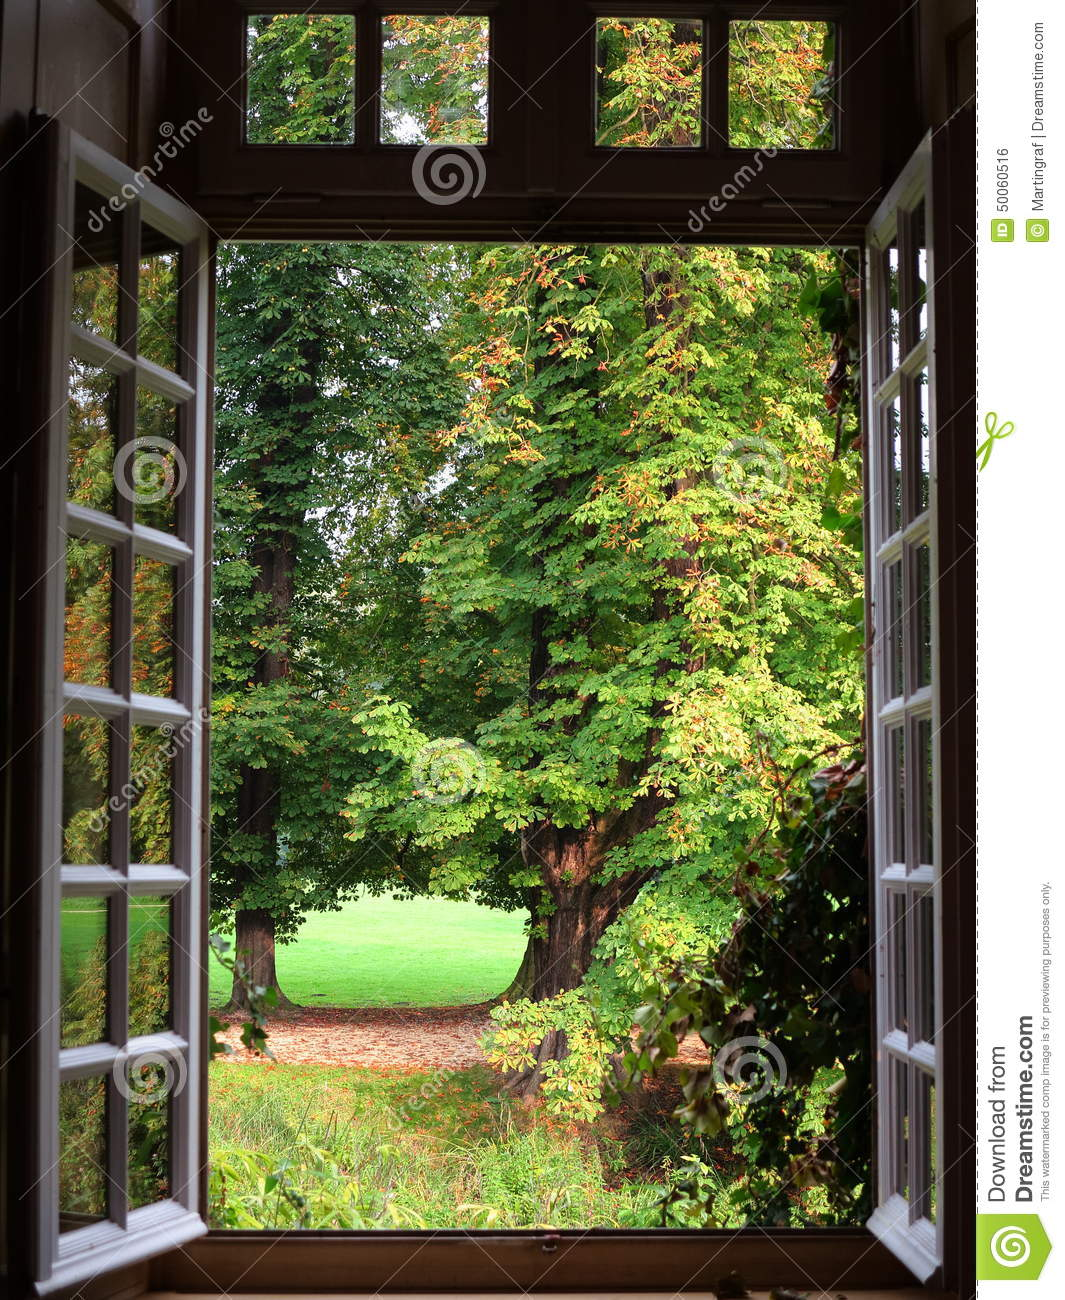 Open window of mansion airing stock photo image of for Par la fenetre ouverte